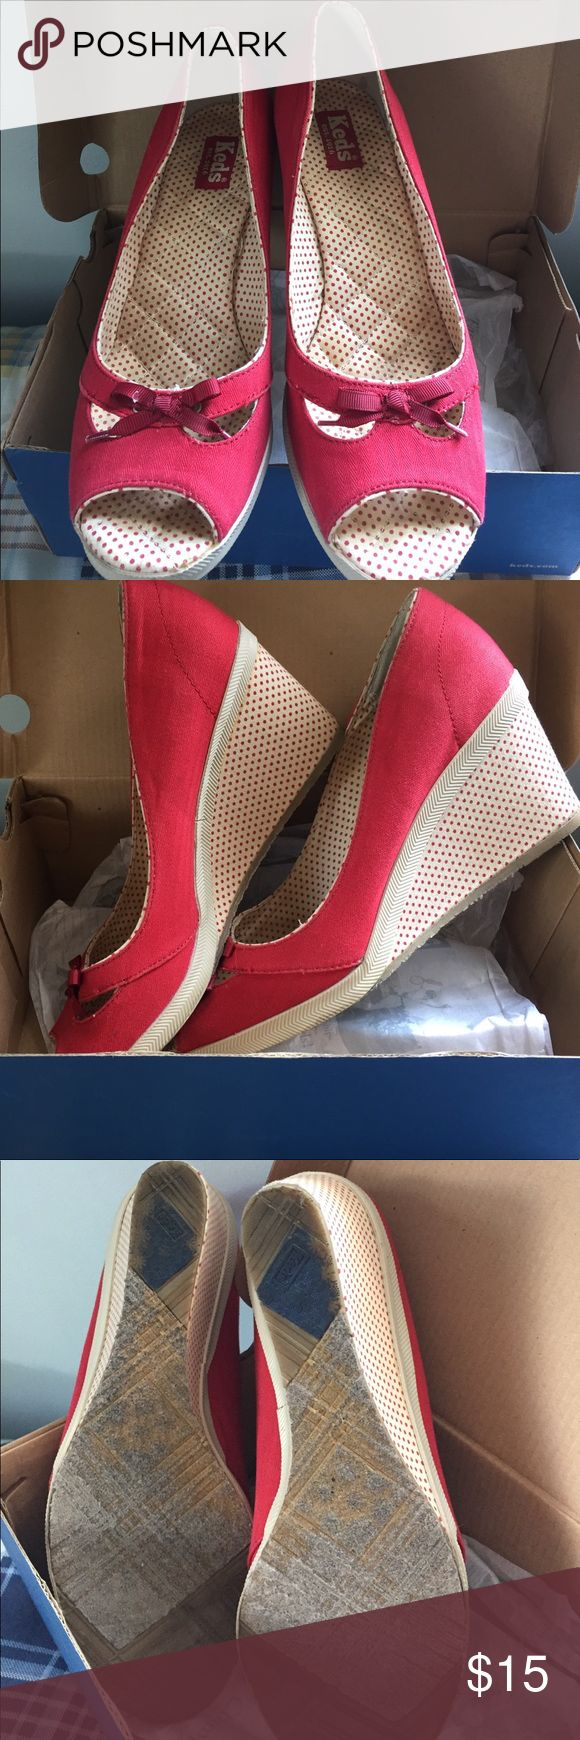 Red wedge shoes Cute red canvas wedges- w/ poka dots on the wedge heels. Worn once or twice?!?! Keds Shoes Wedges